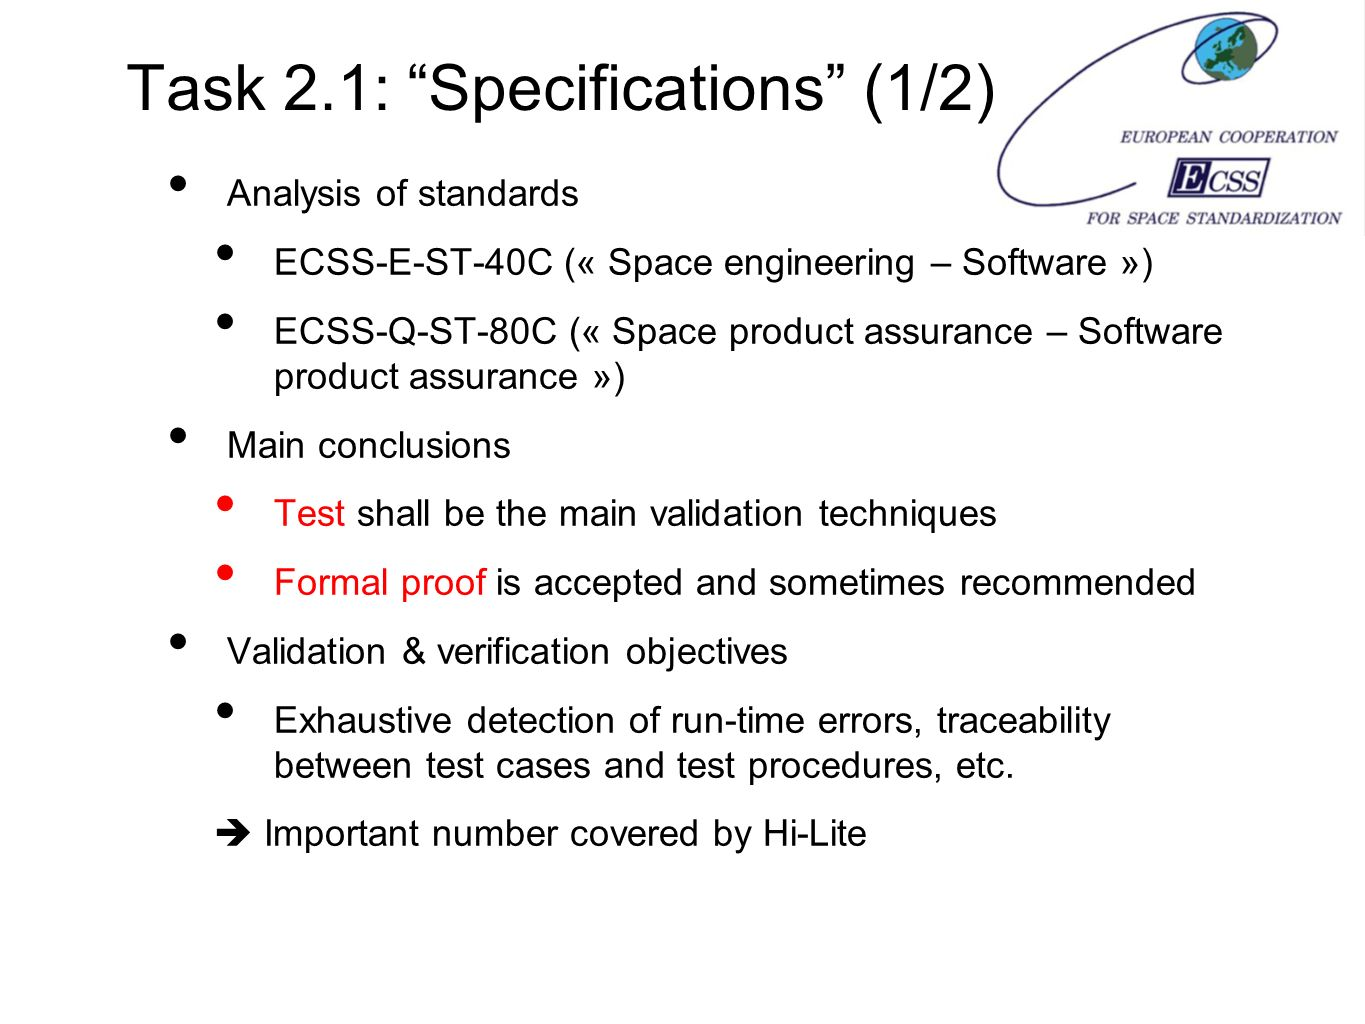 Task 2.1: Specifications (1/2) Analysis of standards ECSS-E-ST-40C (« Space engineering – Software ») ECSS-Q-ST-80C (« Space product assurance – Softw